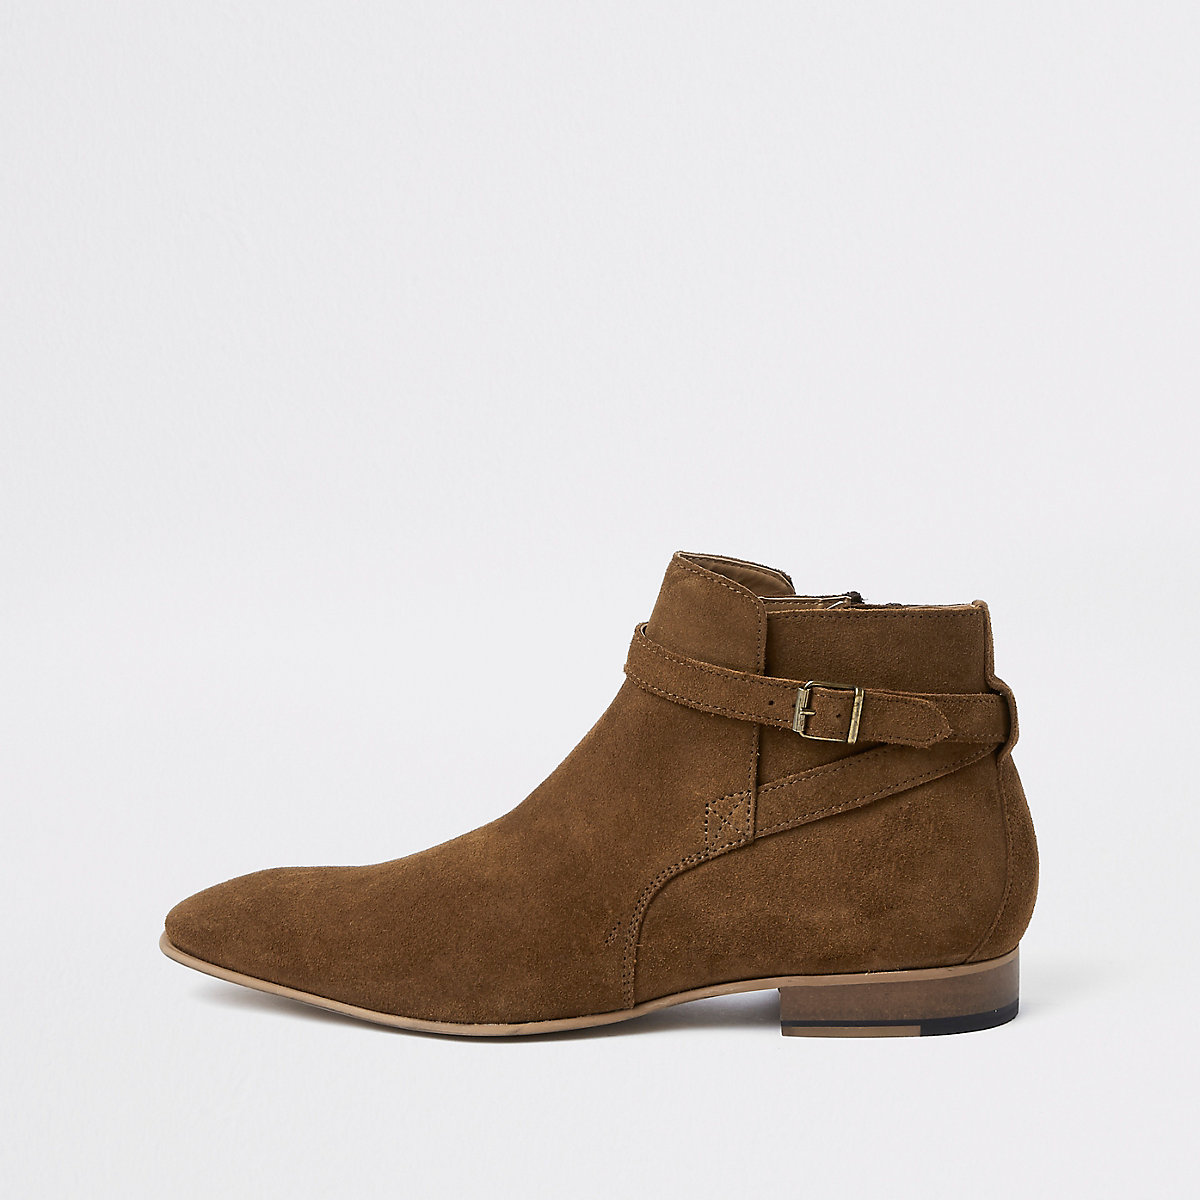 Brown suede buckle Chelsea boots